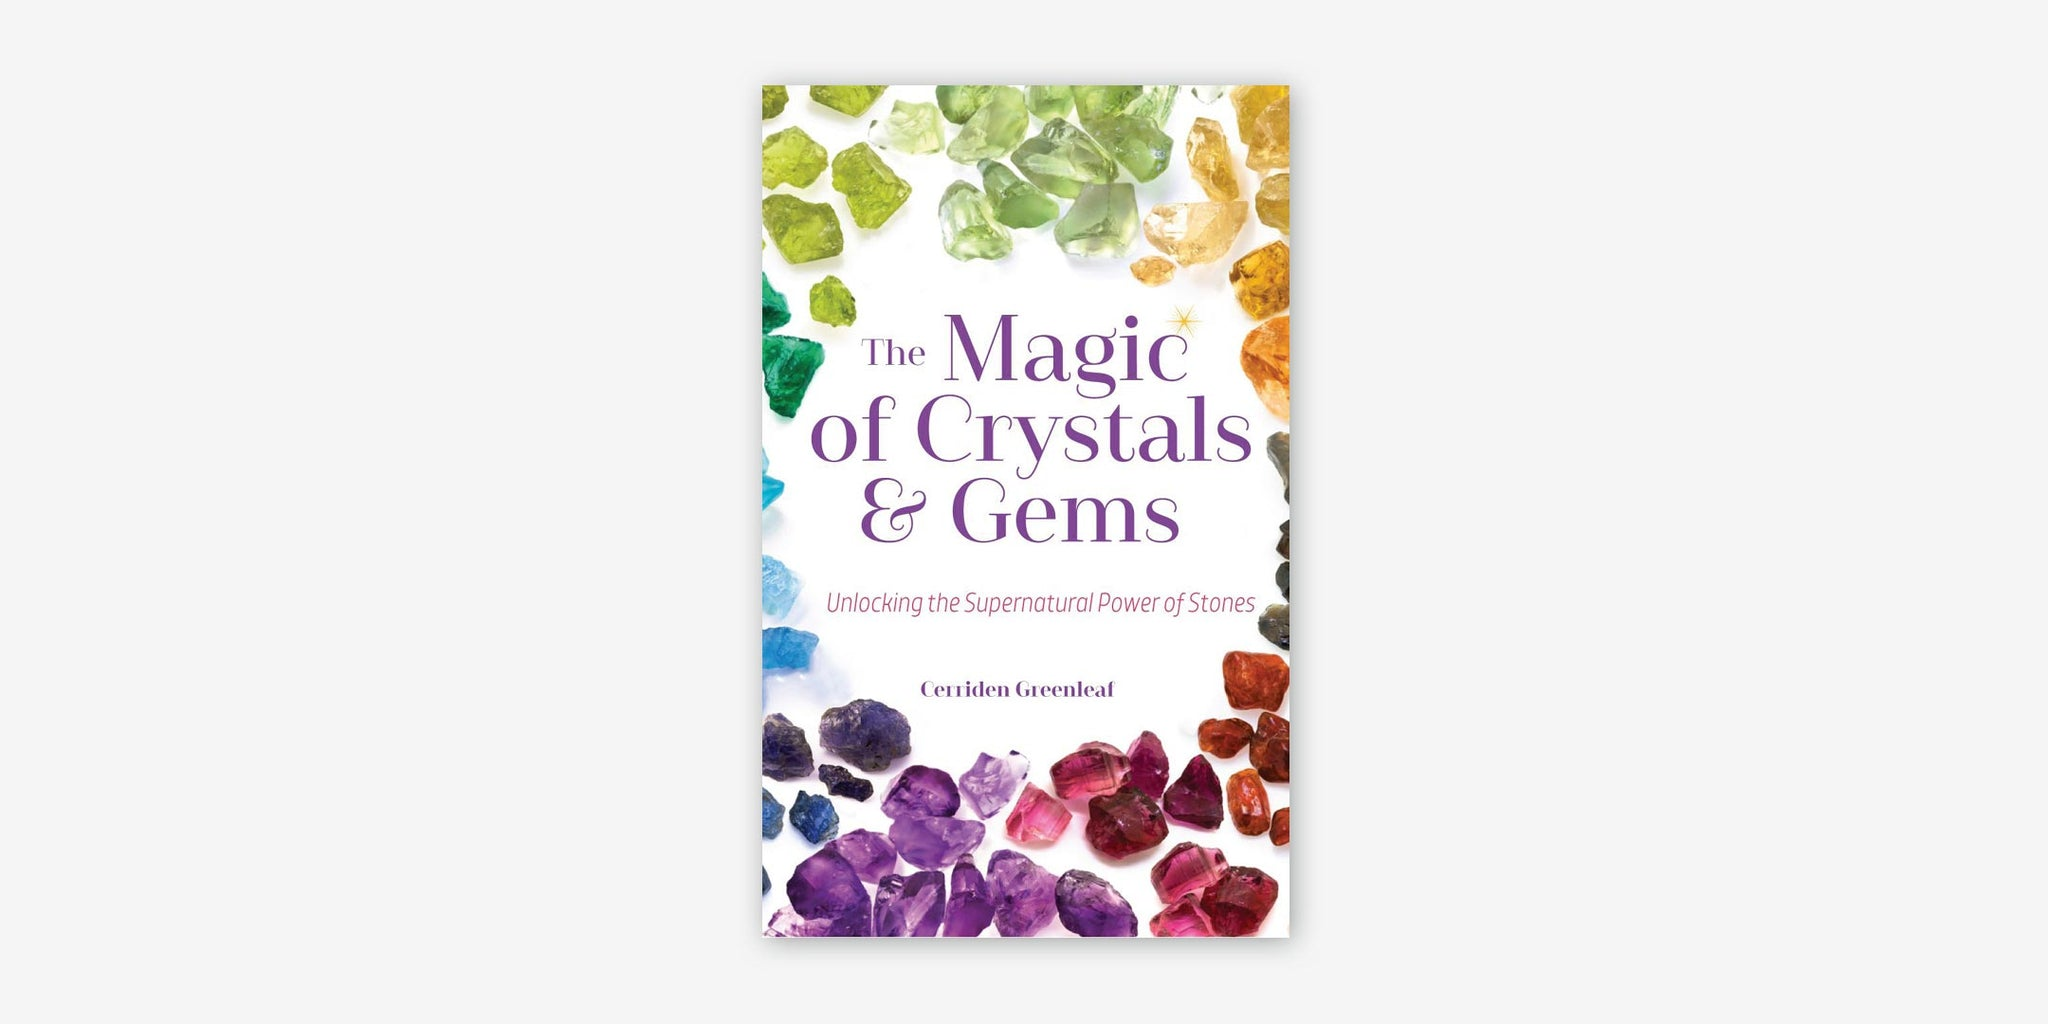 The Magic of Crystals and Gems…